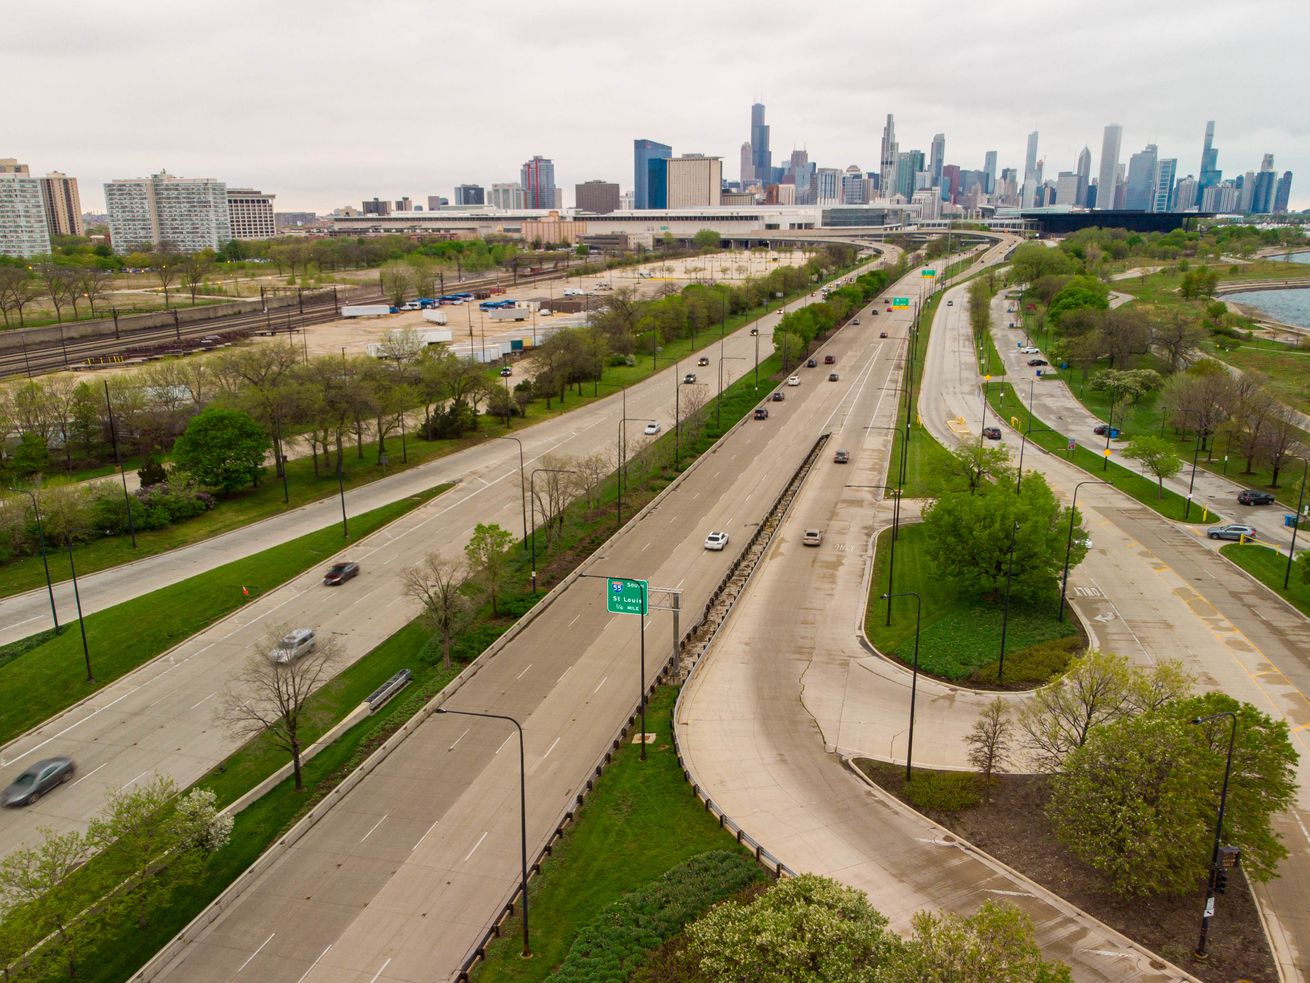 South Lake Shore Drive at East 31st Street, looking north.